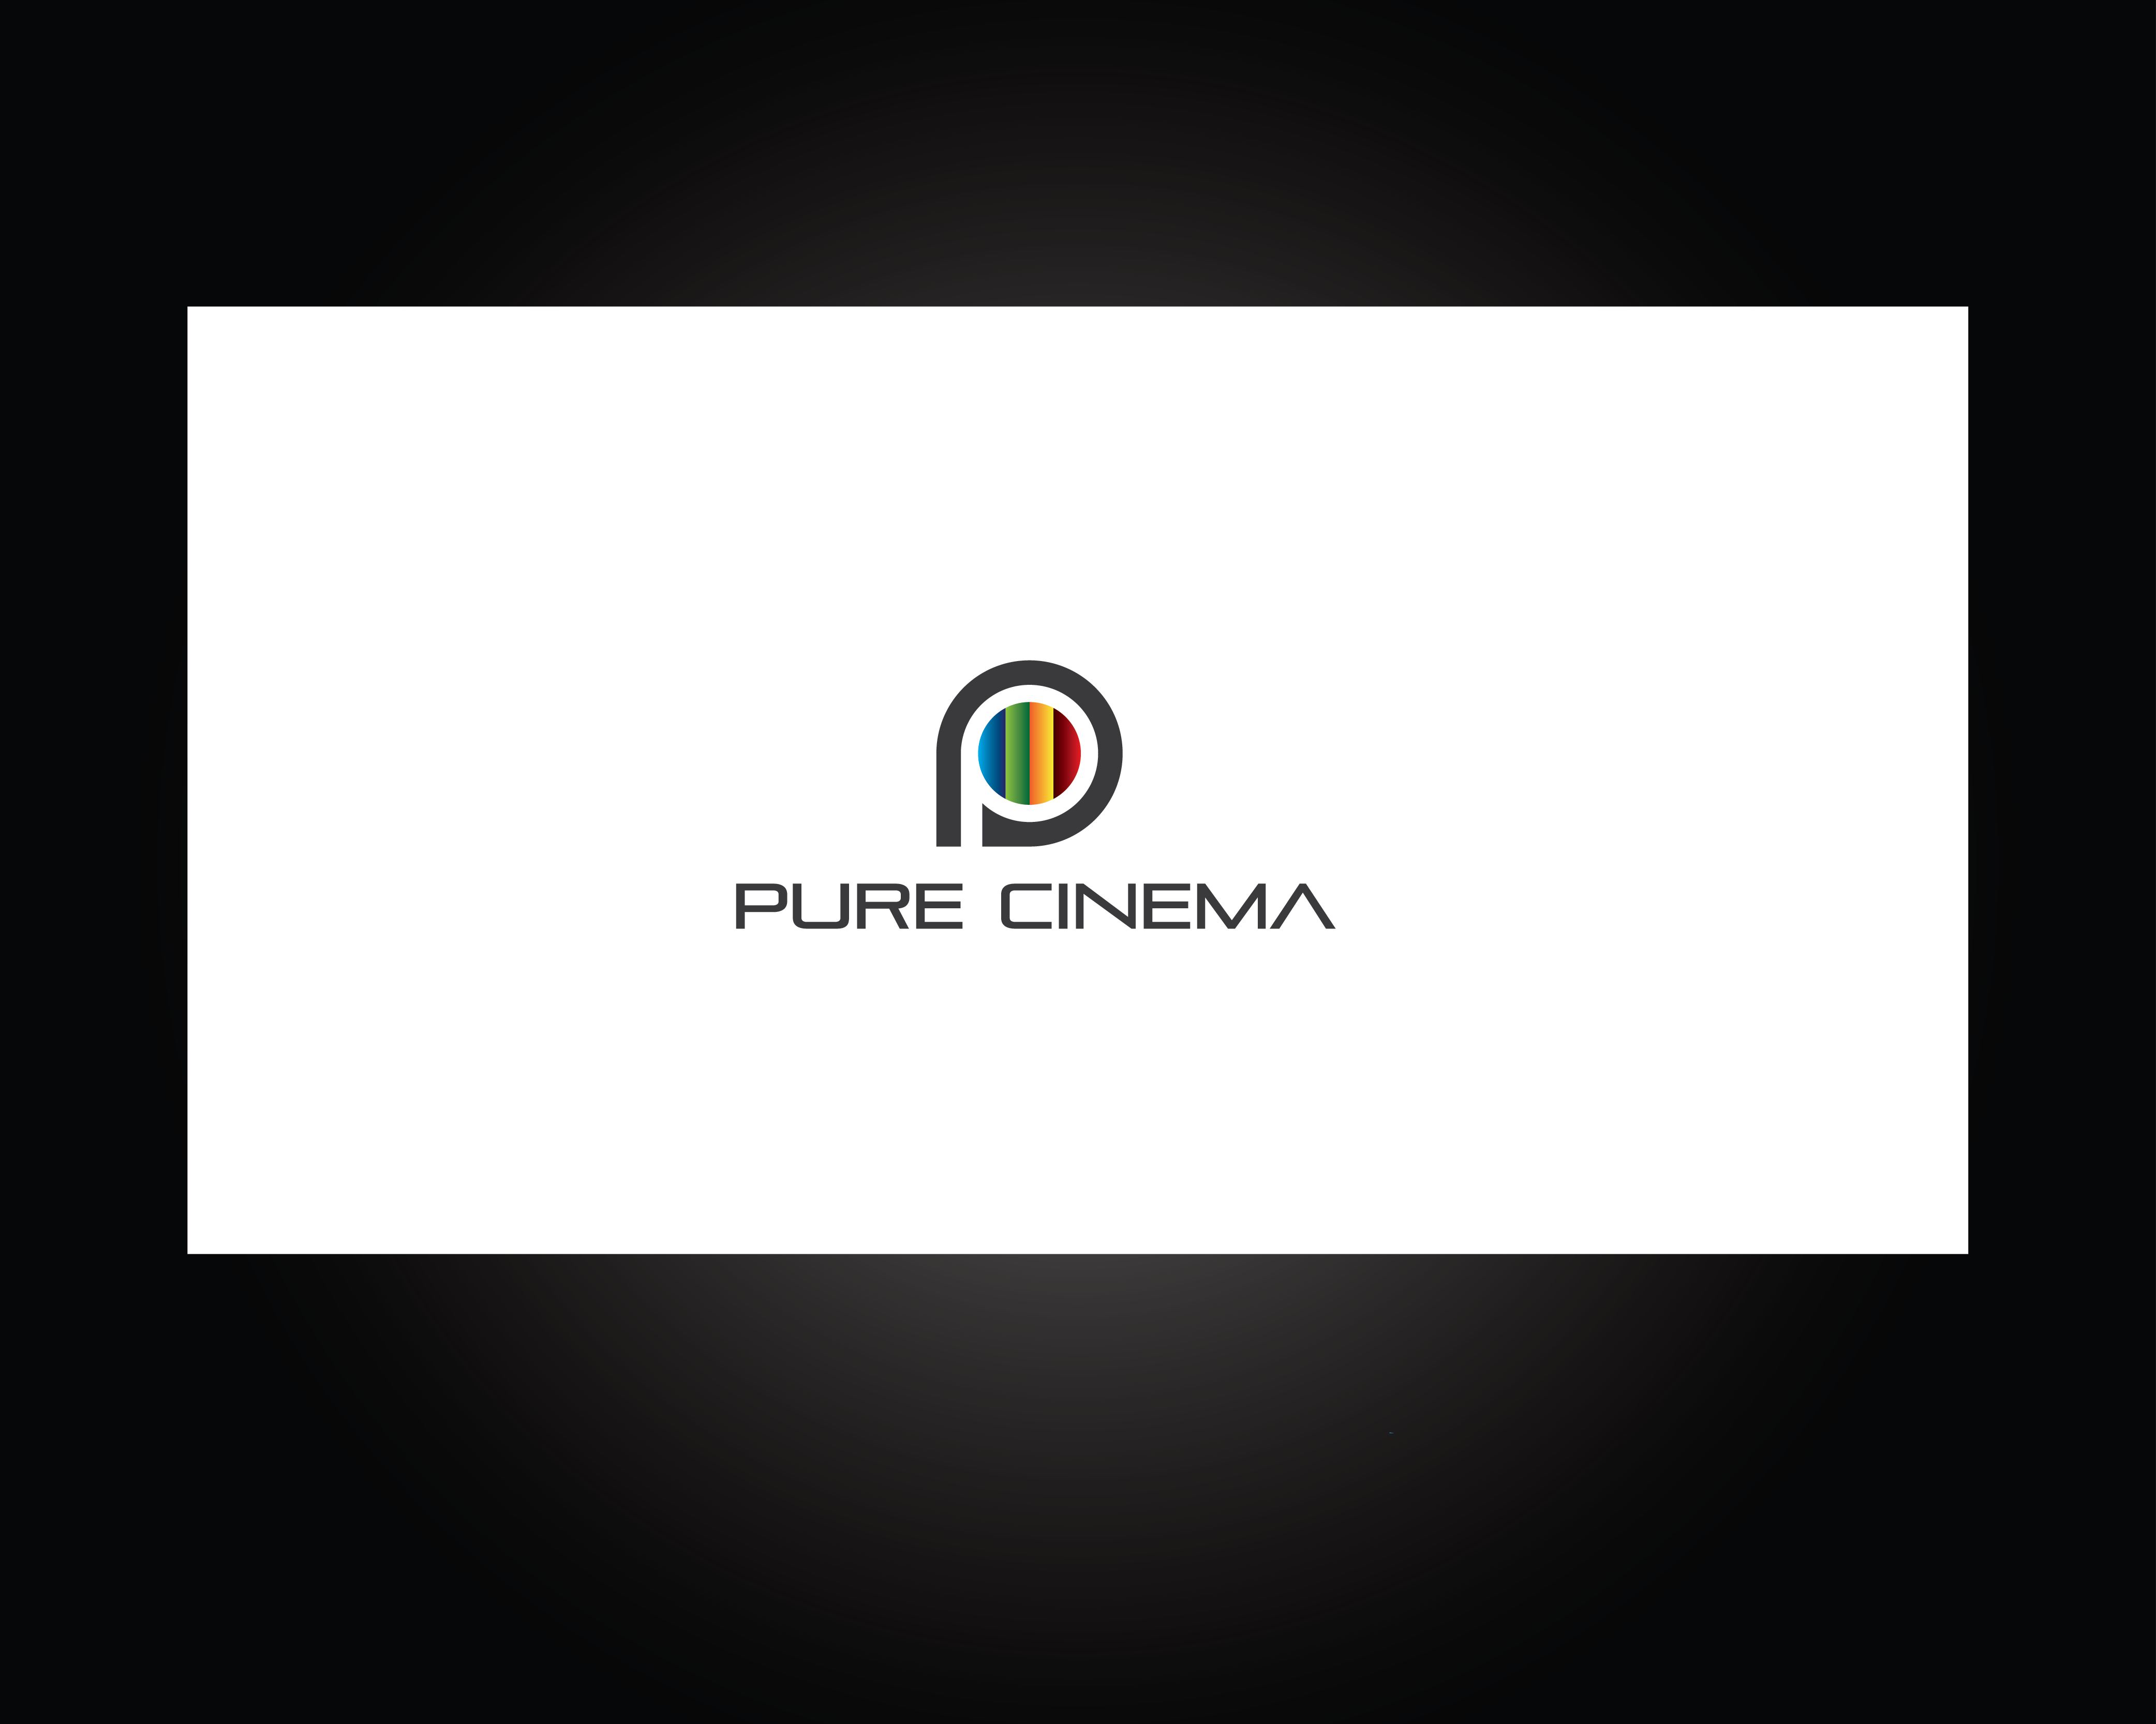 Logo Design by roc - Entry No. 11 in the Logo Design Contest Imaginative Logo Design for Pure Cinema.